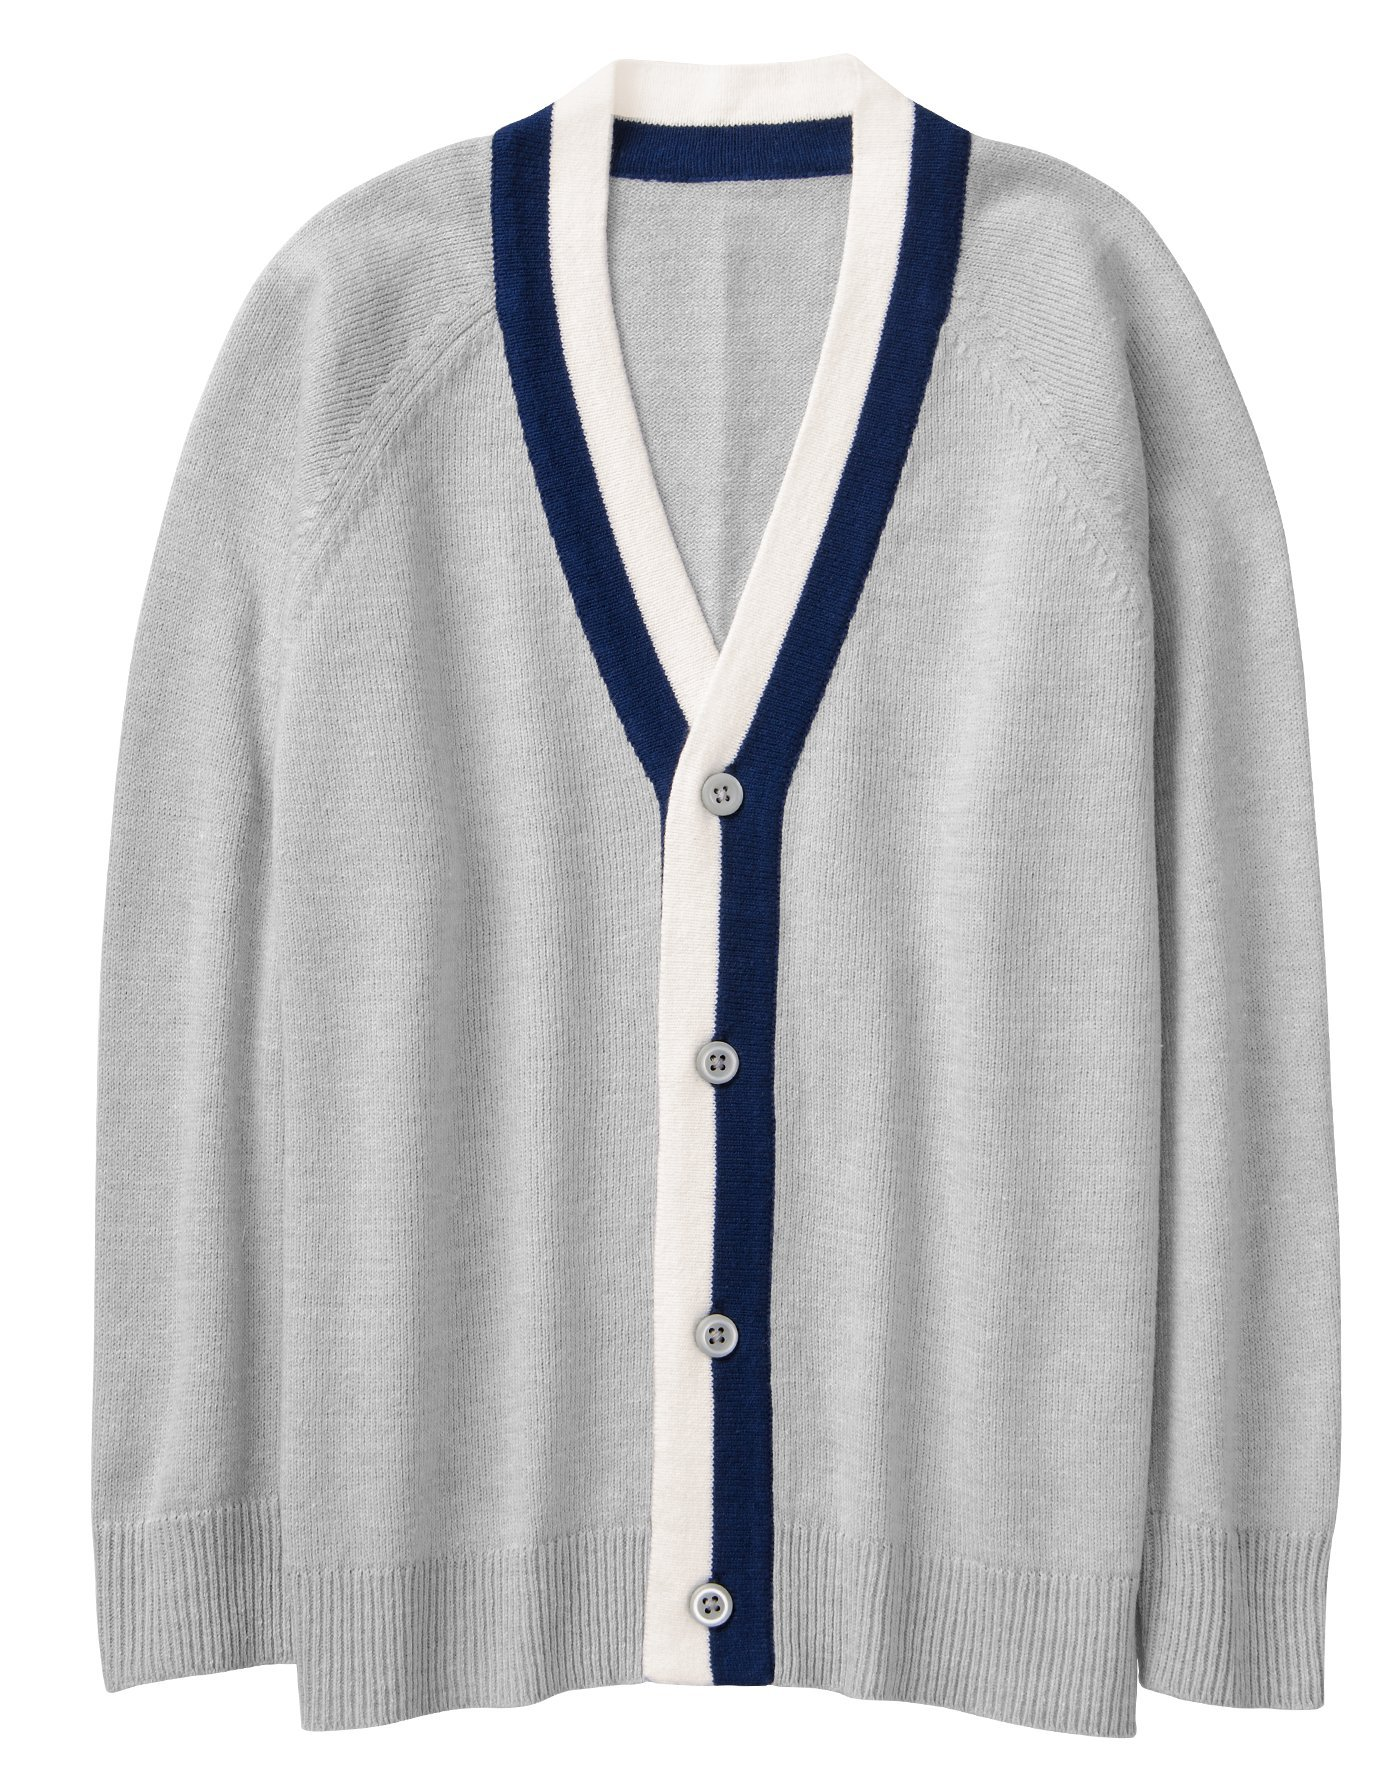 Crazy 8 Boys' Toddler Tipped Cardigan, Dove, 5T